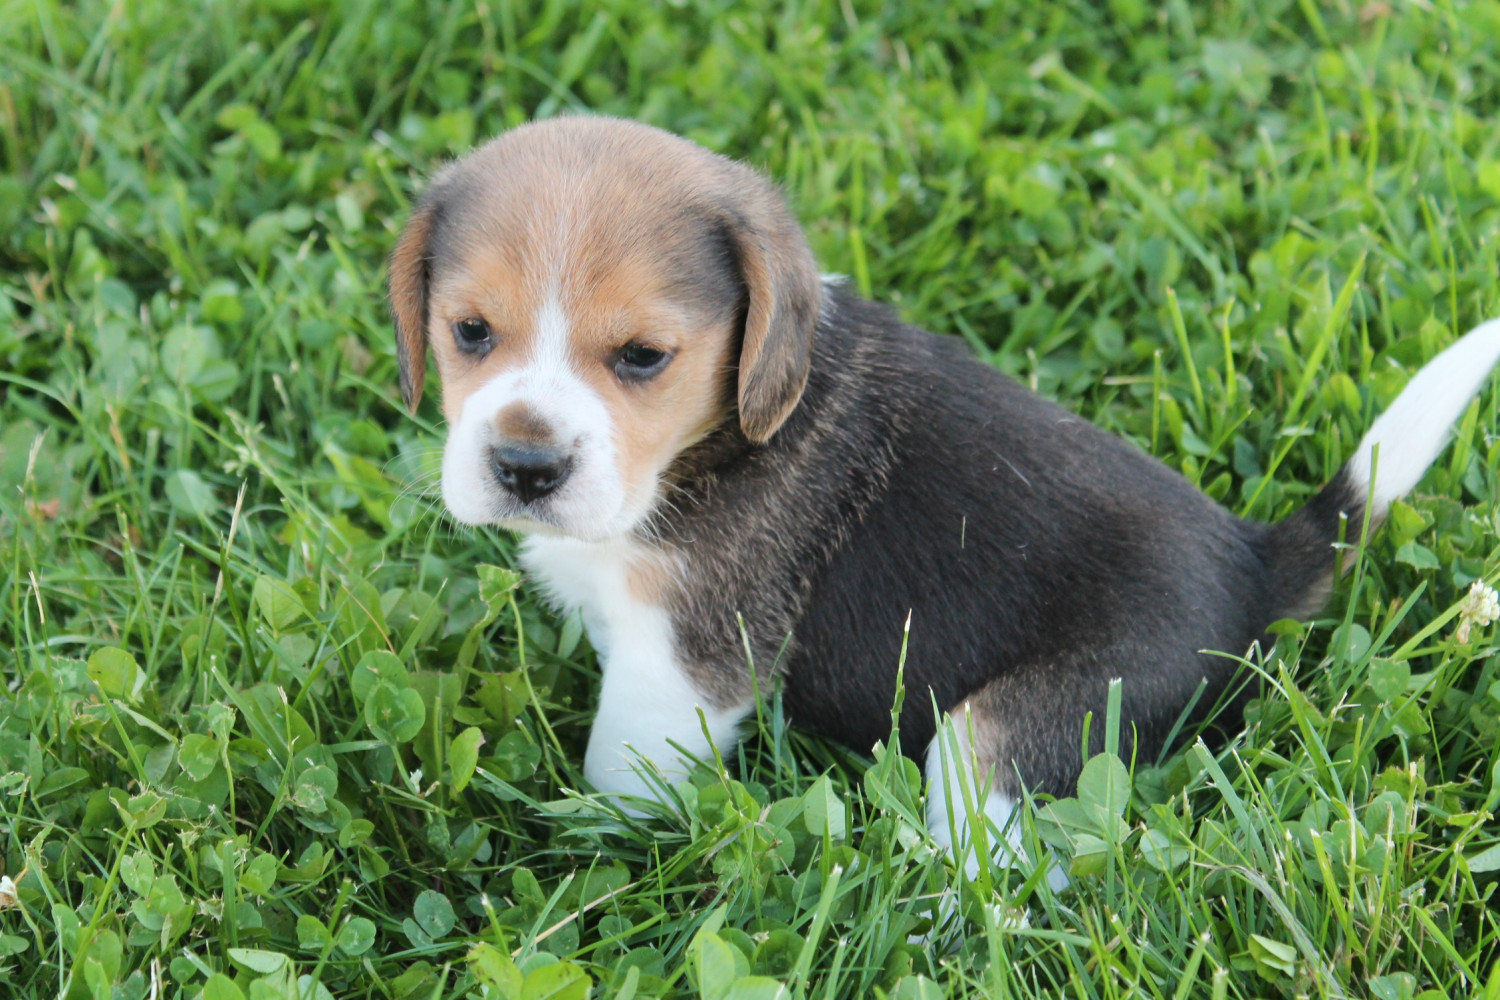 Beagle Puppies For Sale In Northern Territory Australia